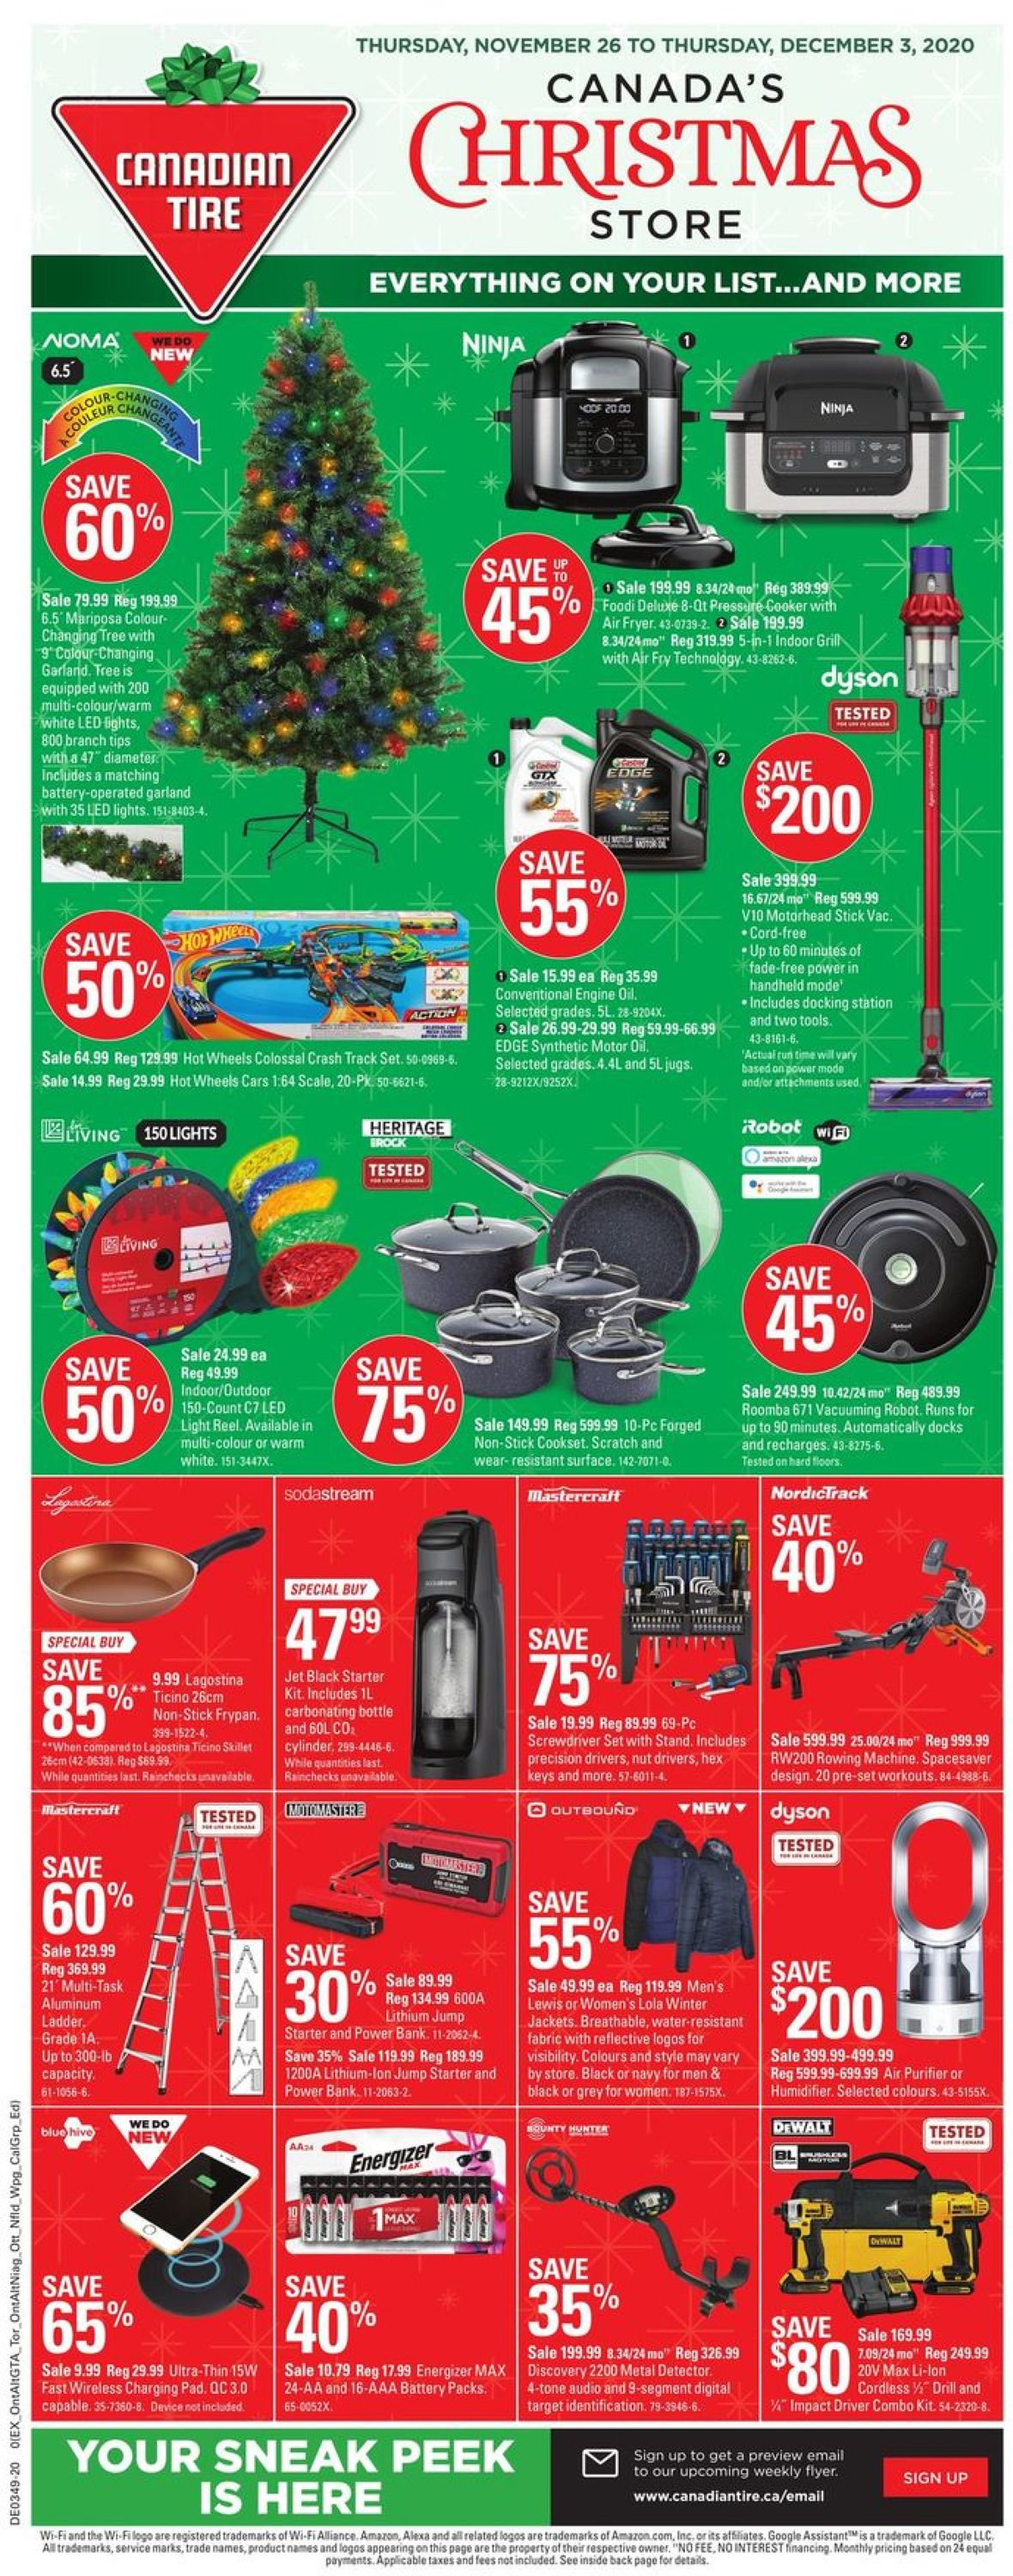 Canadian Tire Christmas Store 2020 Flyer - 11/26-12/03/2020